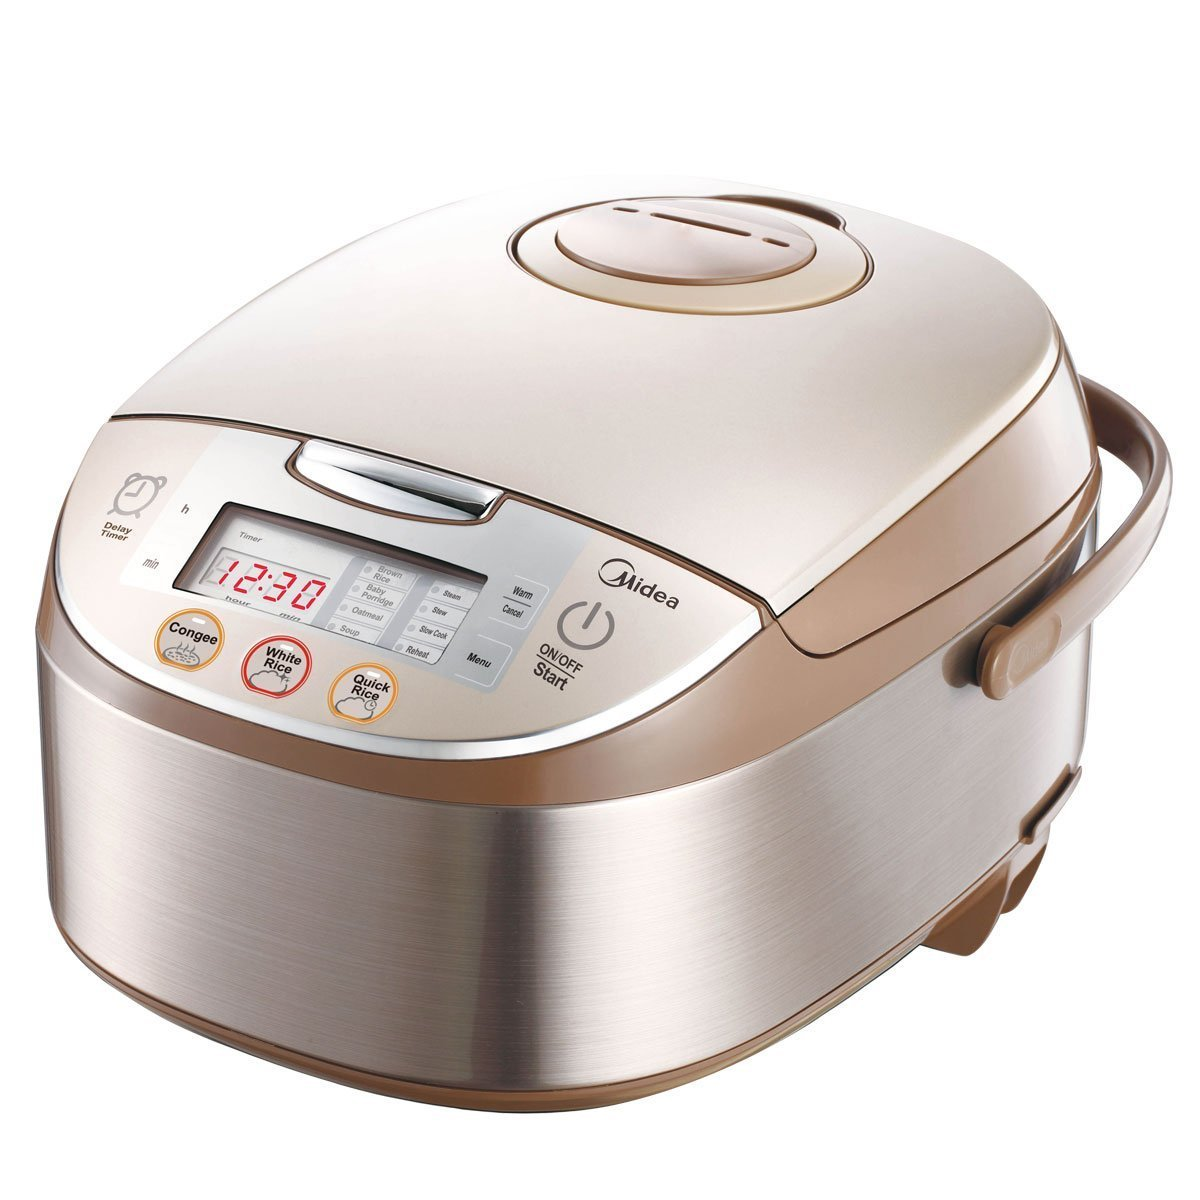 Midea Mb-fs5017 10 Cup Smart Multi-cooker/Rice Cooker/Maker & Steamer & Slow Cooker, Brushed Brown, 5Qt/875W